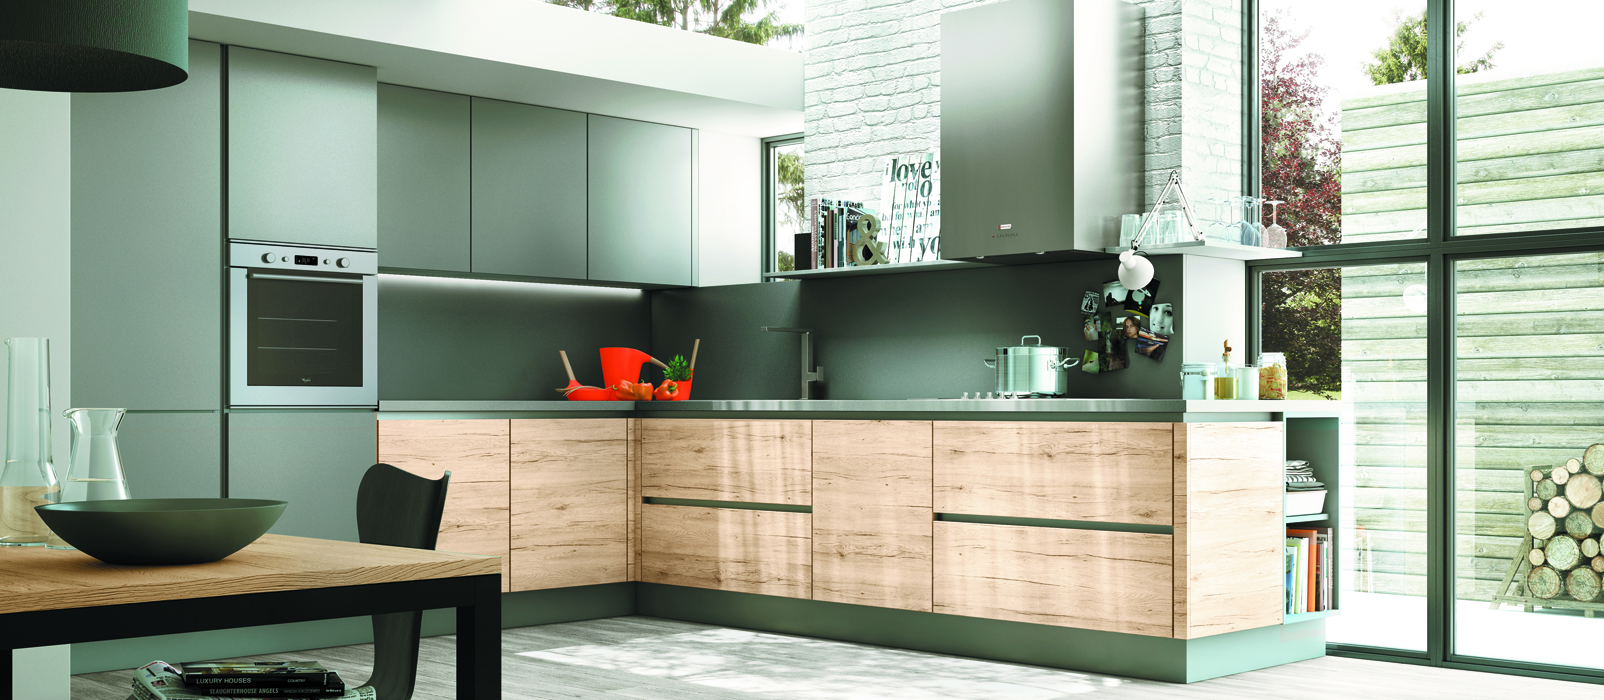 Cuisine design inox pr l vement d for Cuisine inox design